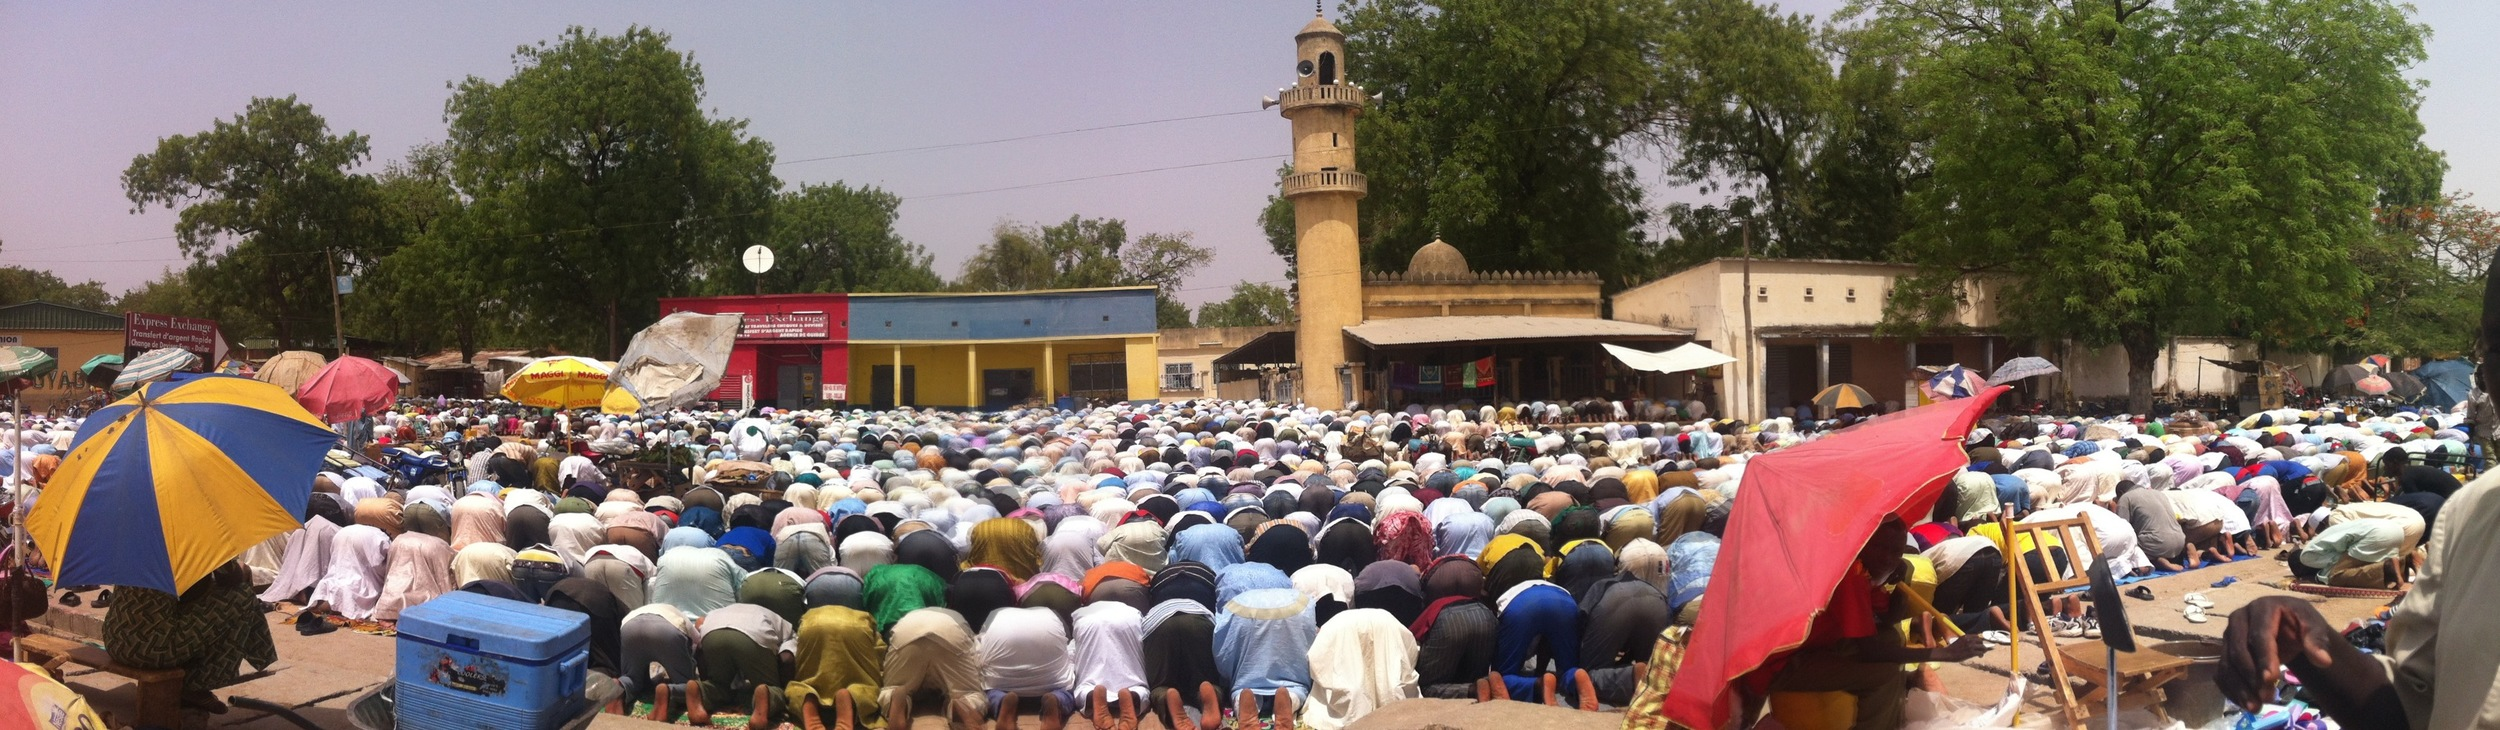 Midday prayer at the Friday market in Guider